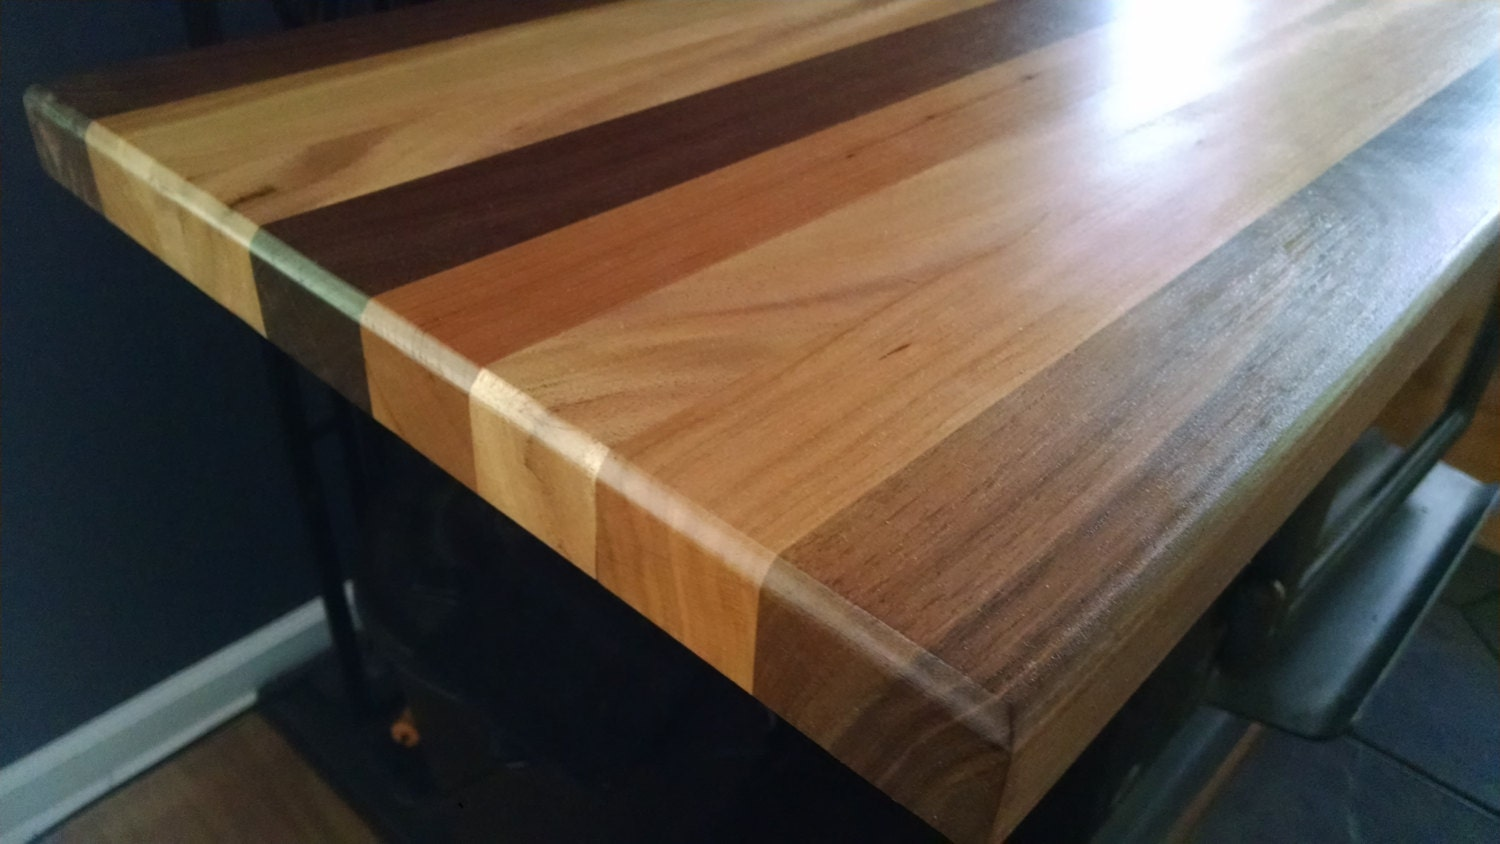 Rustic Table Tops Made From Mahogany, Walnut, And Cherry Wood (Coffee Table,  Bar Top, Countertop)